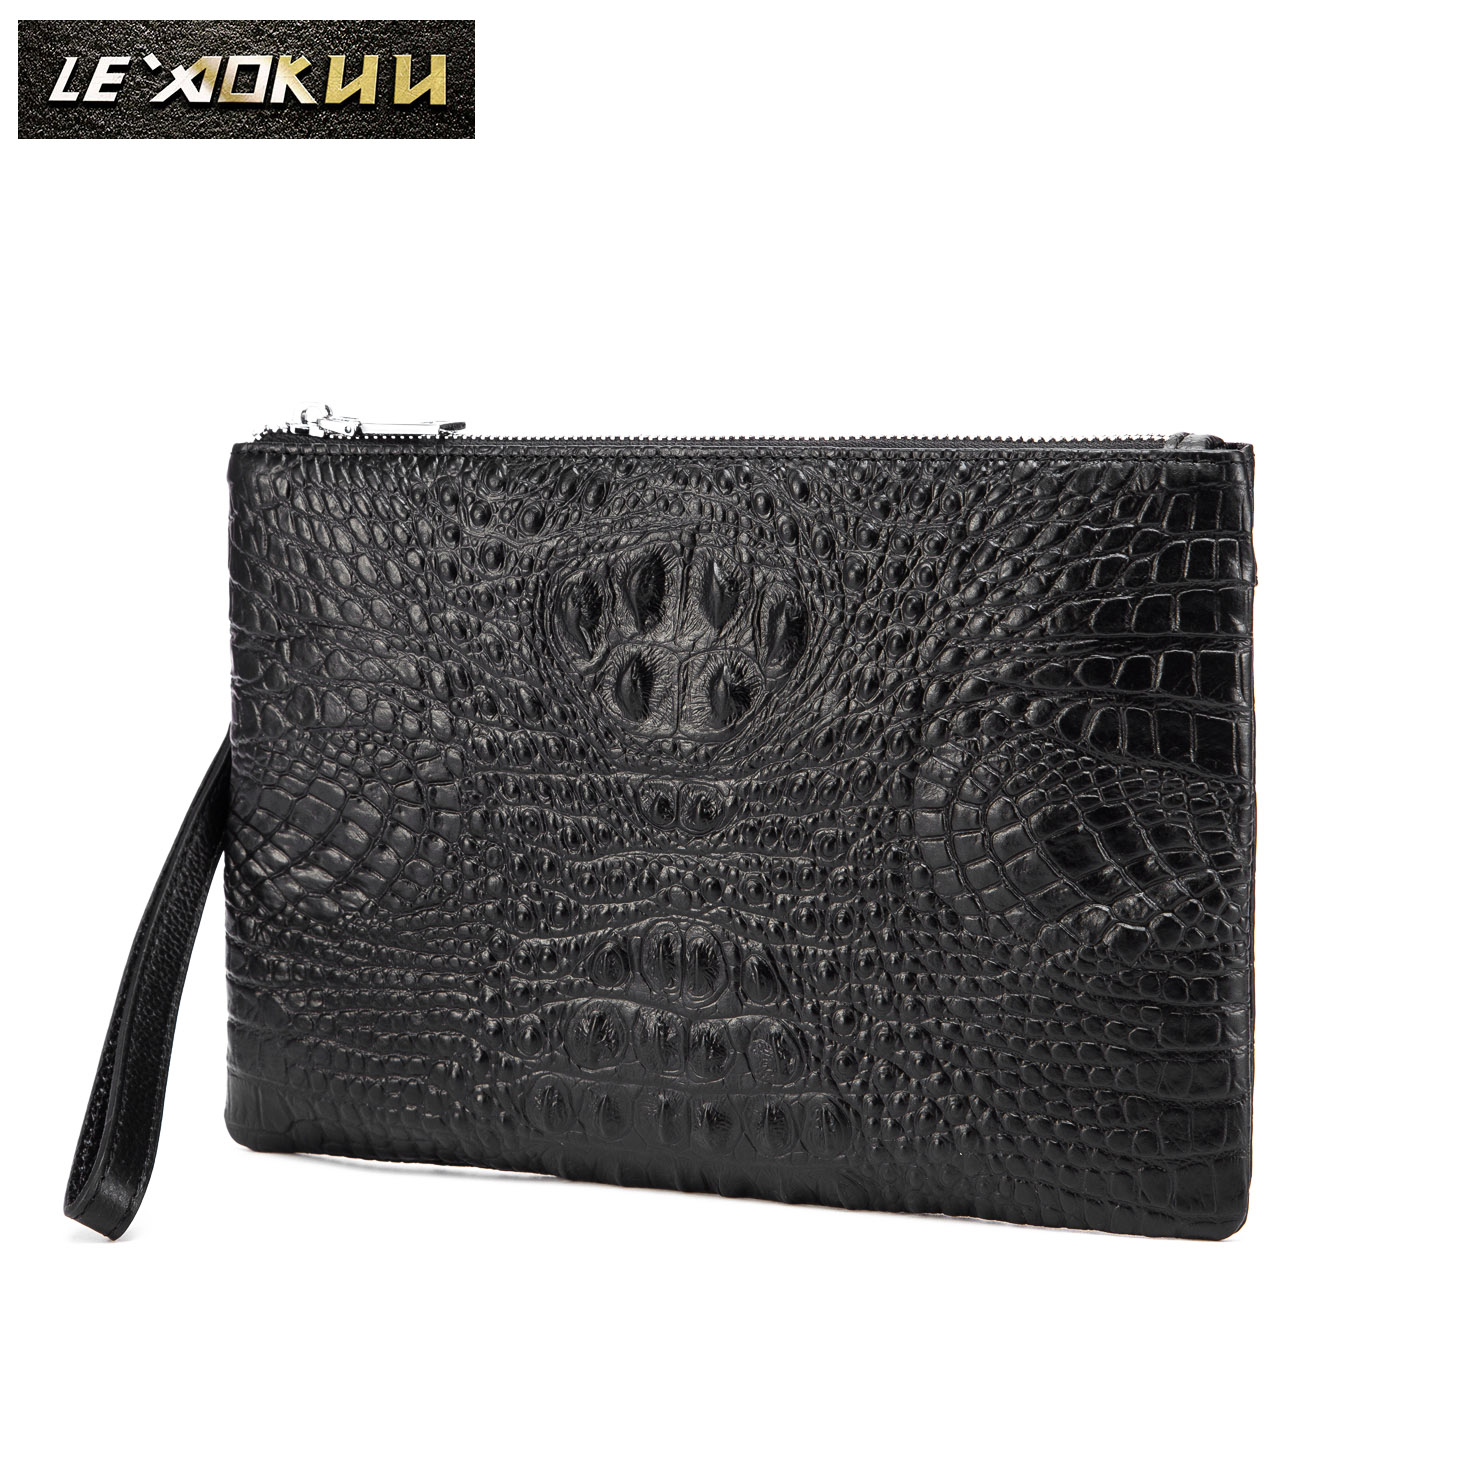 "Original leather Men Brand Fashion Slim Under Arm Clutch Bag Handbag Designer Chain Organizer Purse 10"" Tablet Case 9130(China)"